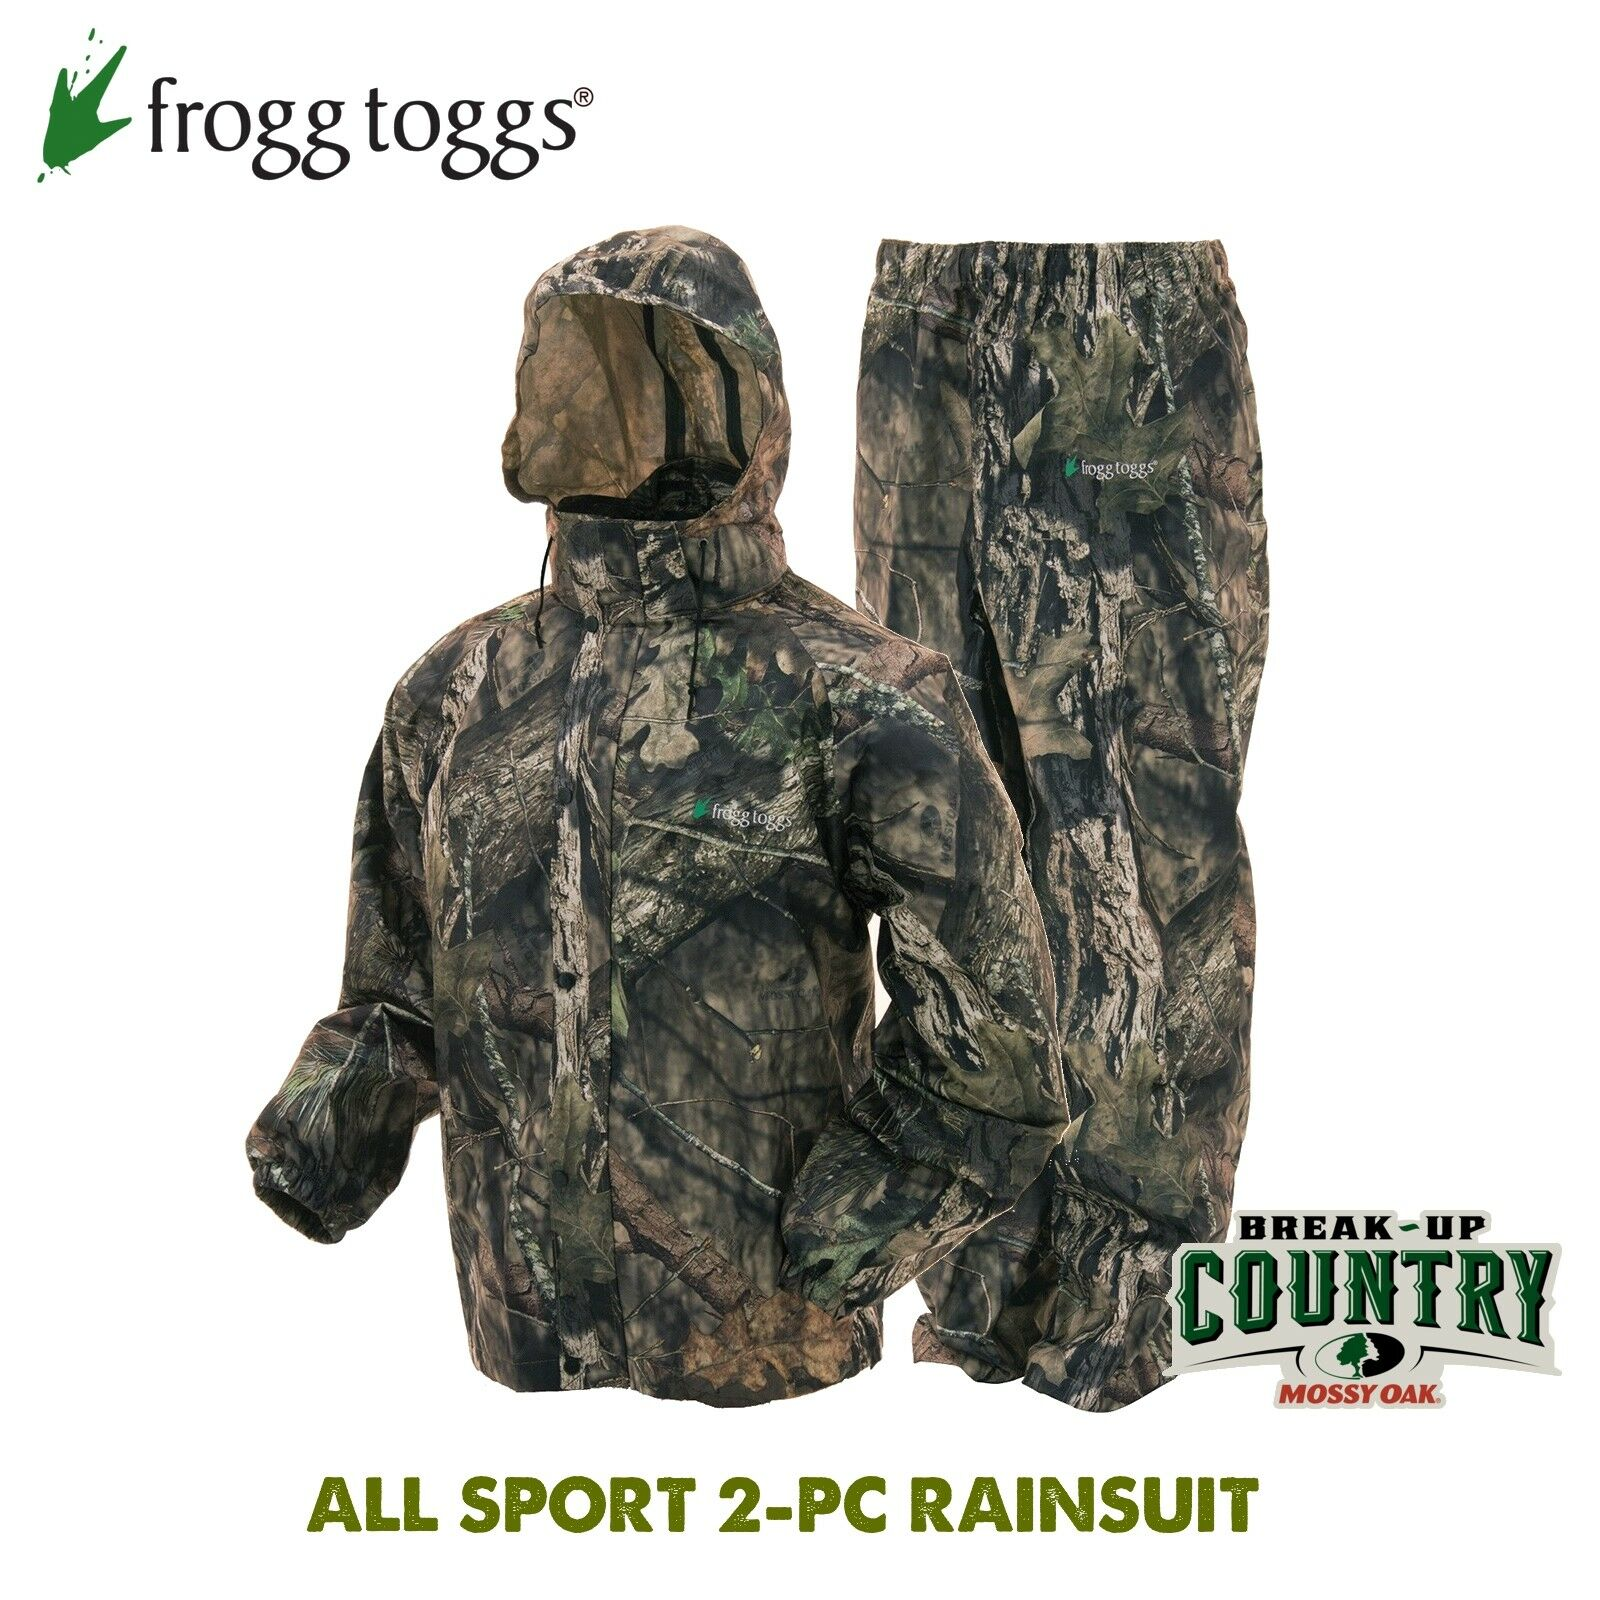 Frogg Toggs ALL SPORT Mossy Oak BU Country Camo 2-pc  Rain Suit - Adult XX-LARGE  great selection & quick delivery